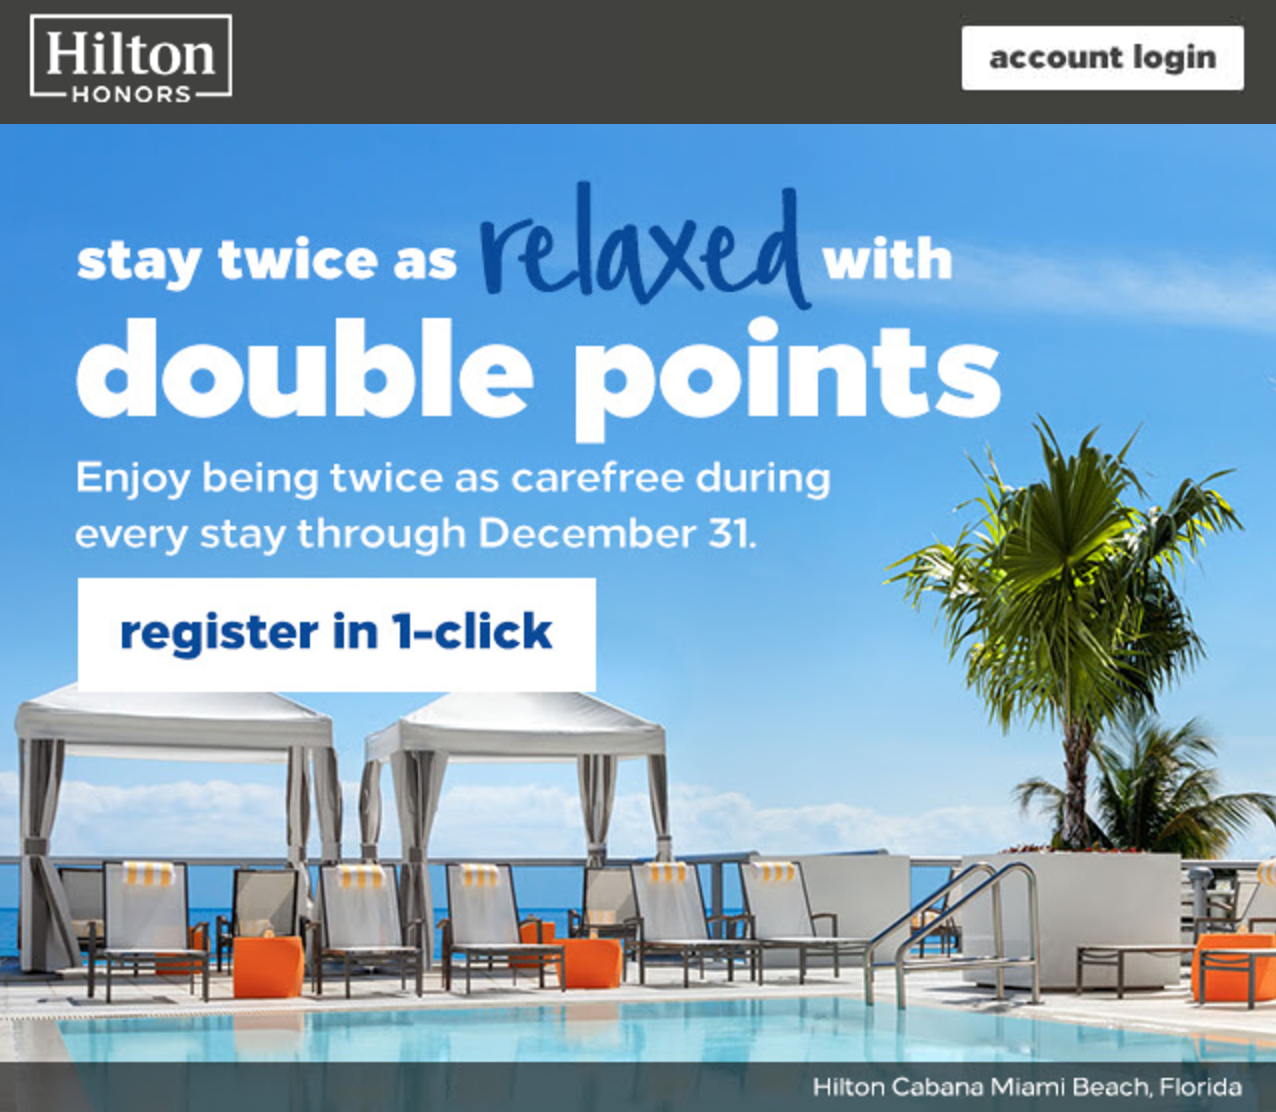 Hilton's latest promotion offers double points on stays this fall